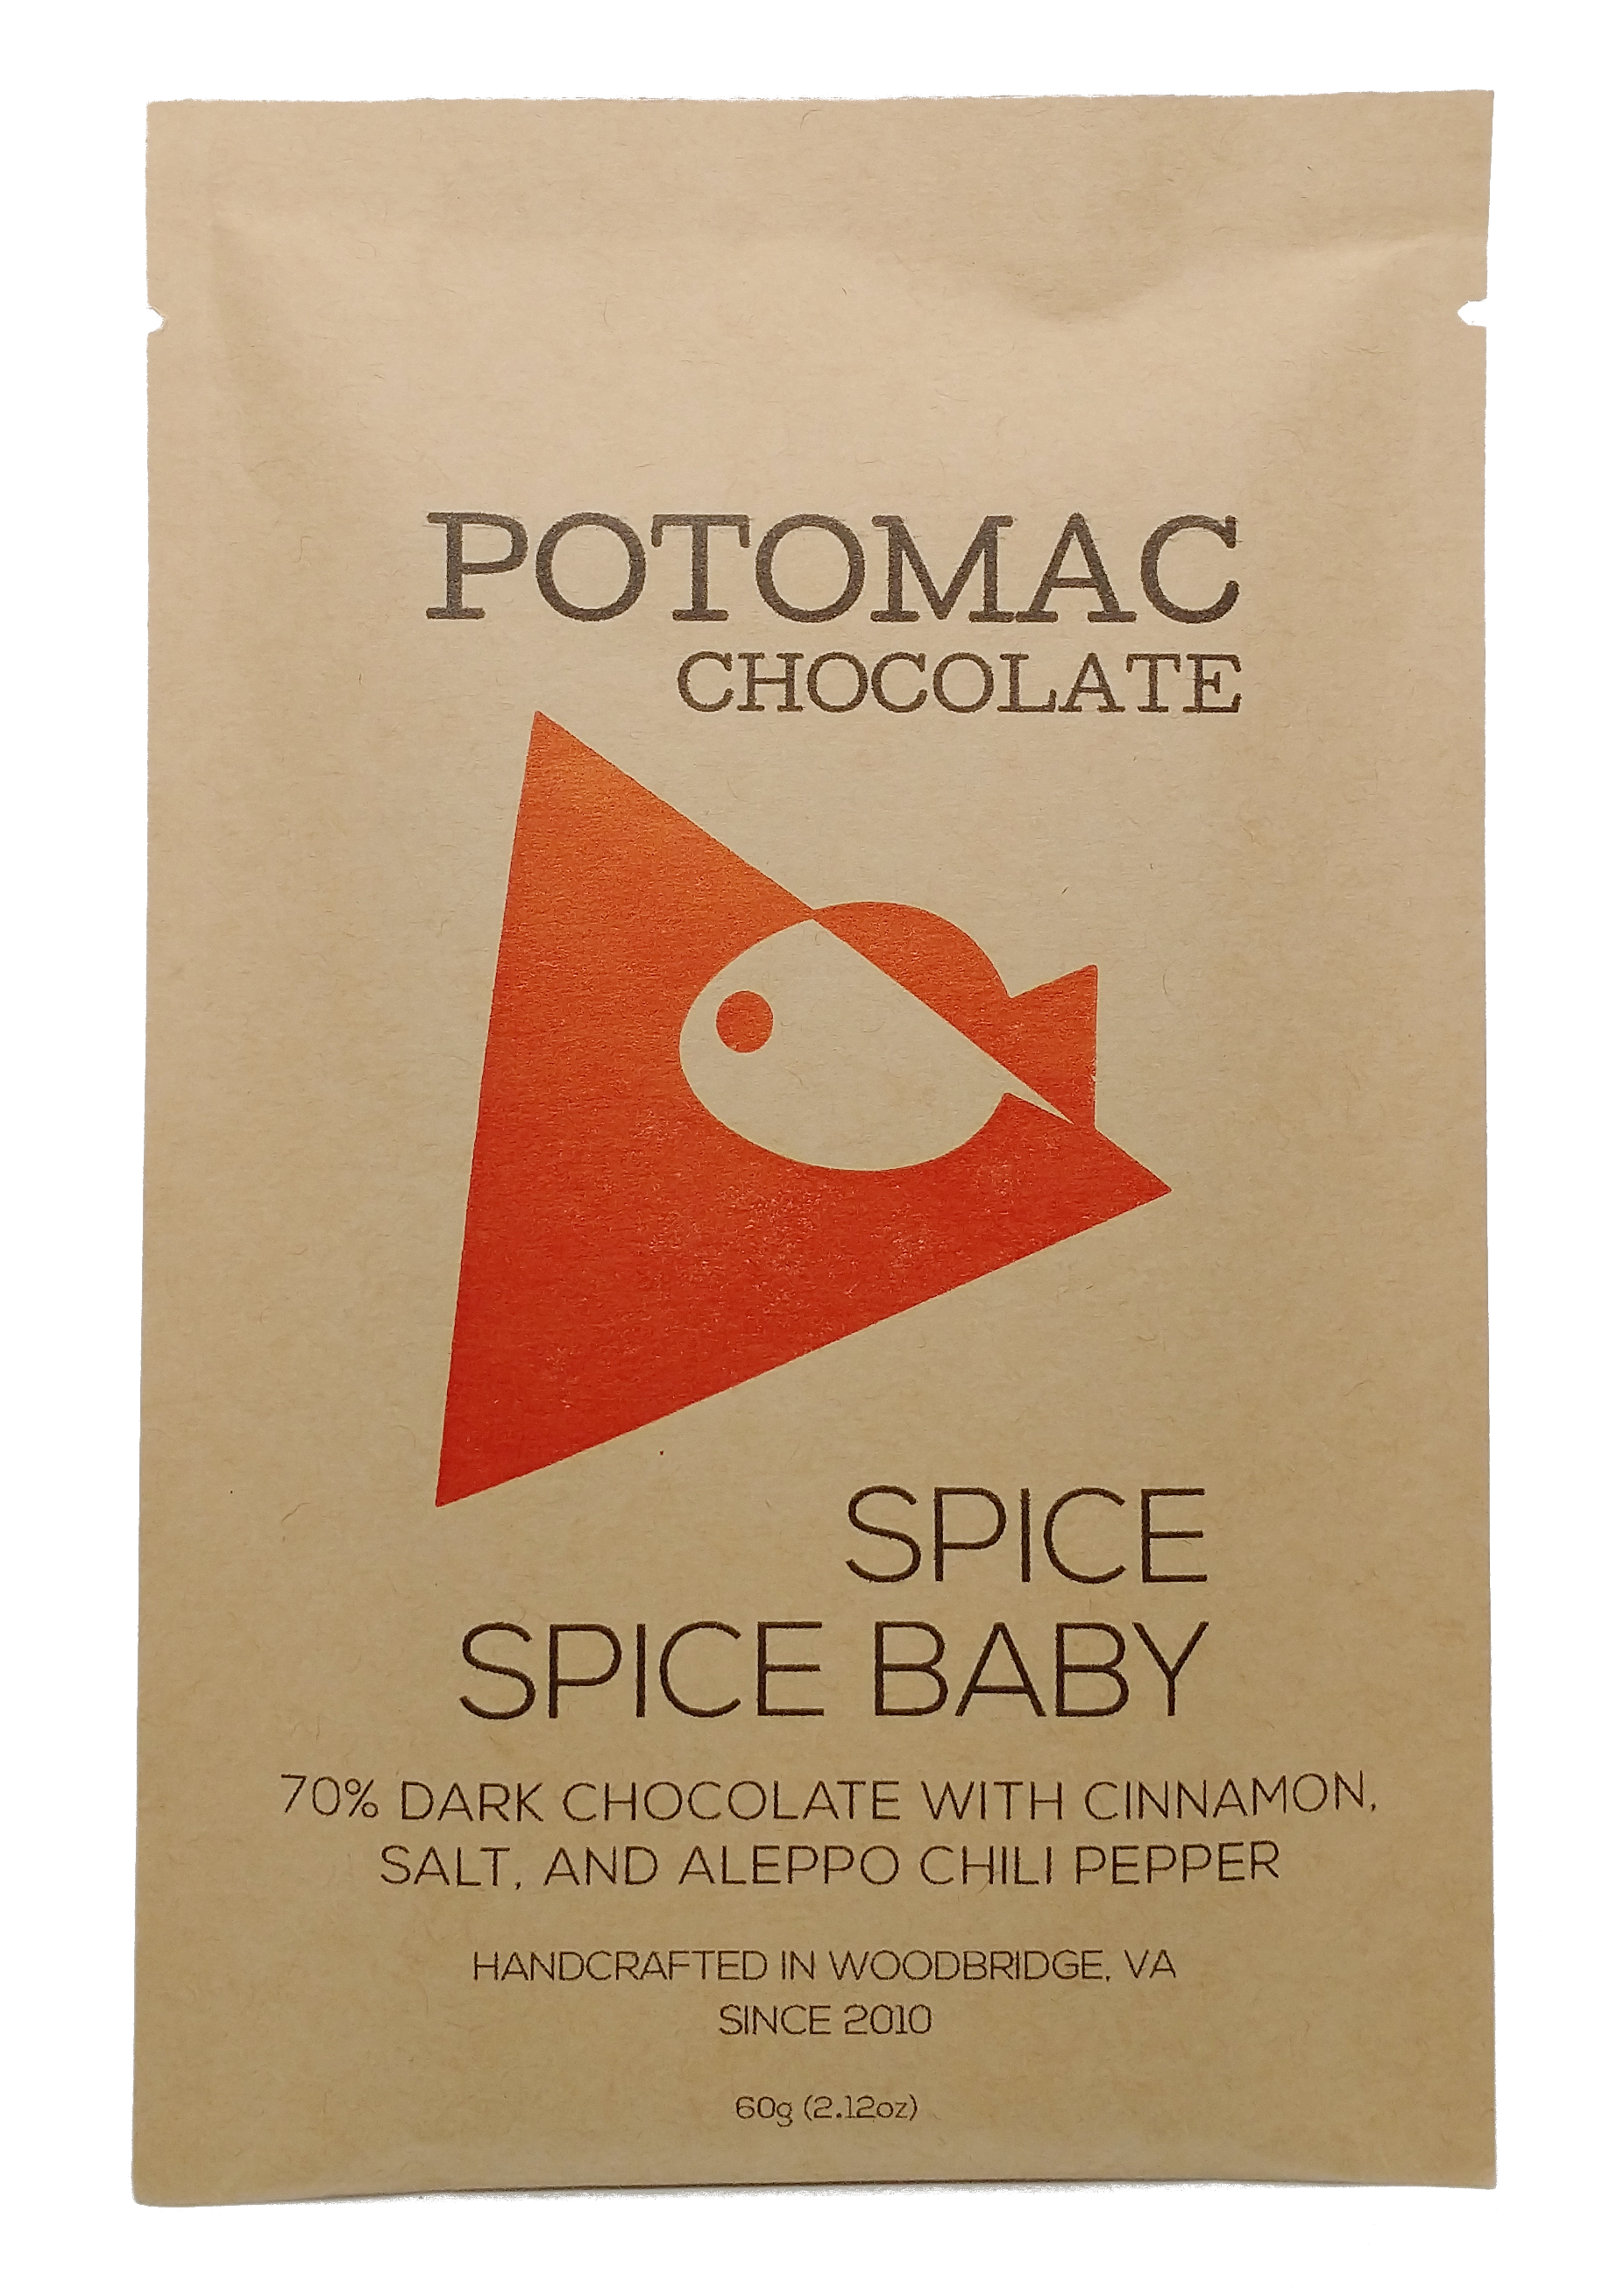 Spice Spice Baby - Dark Chocolate Bar spiced with cinnamon, sea salt, and aleppo chili pepper